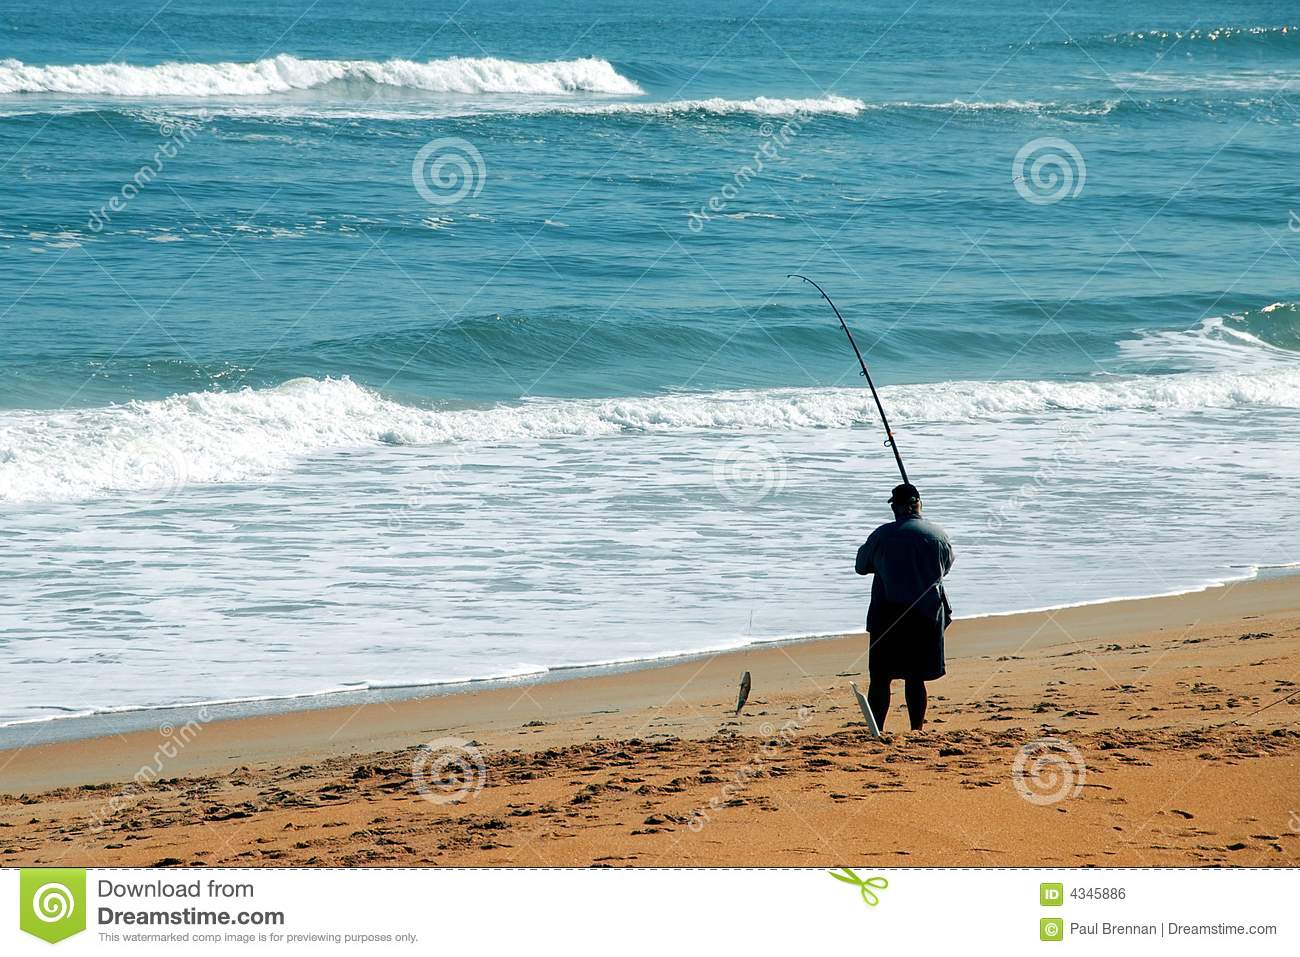 Man angling in surf from beach